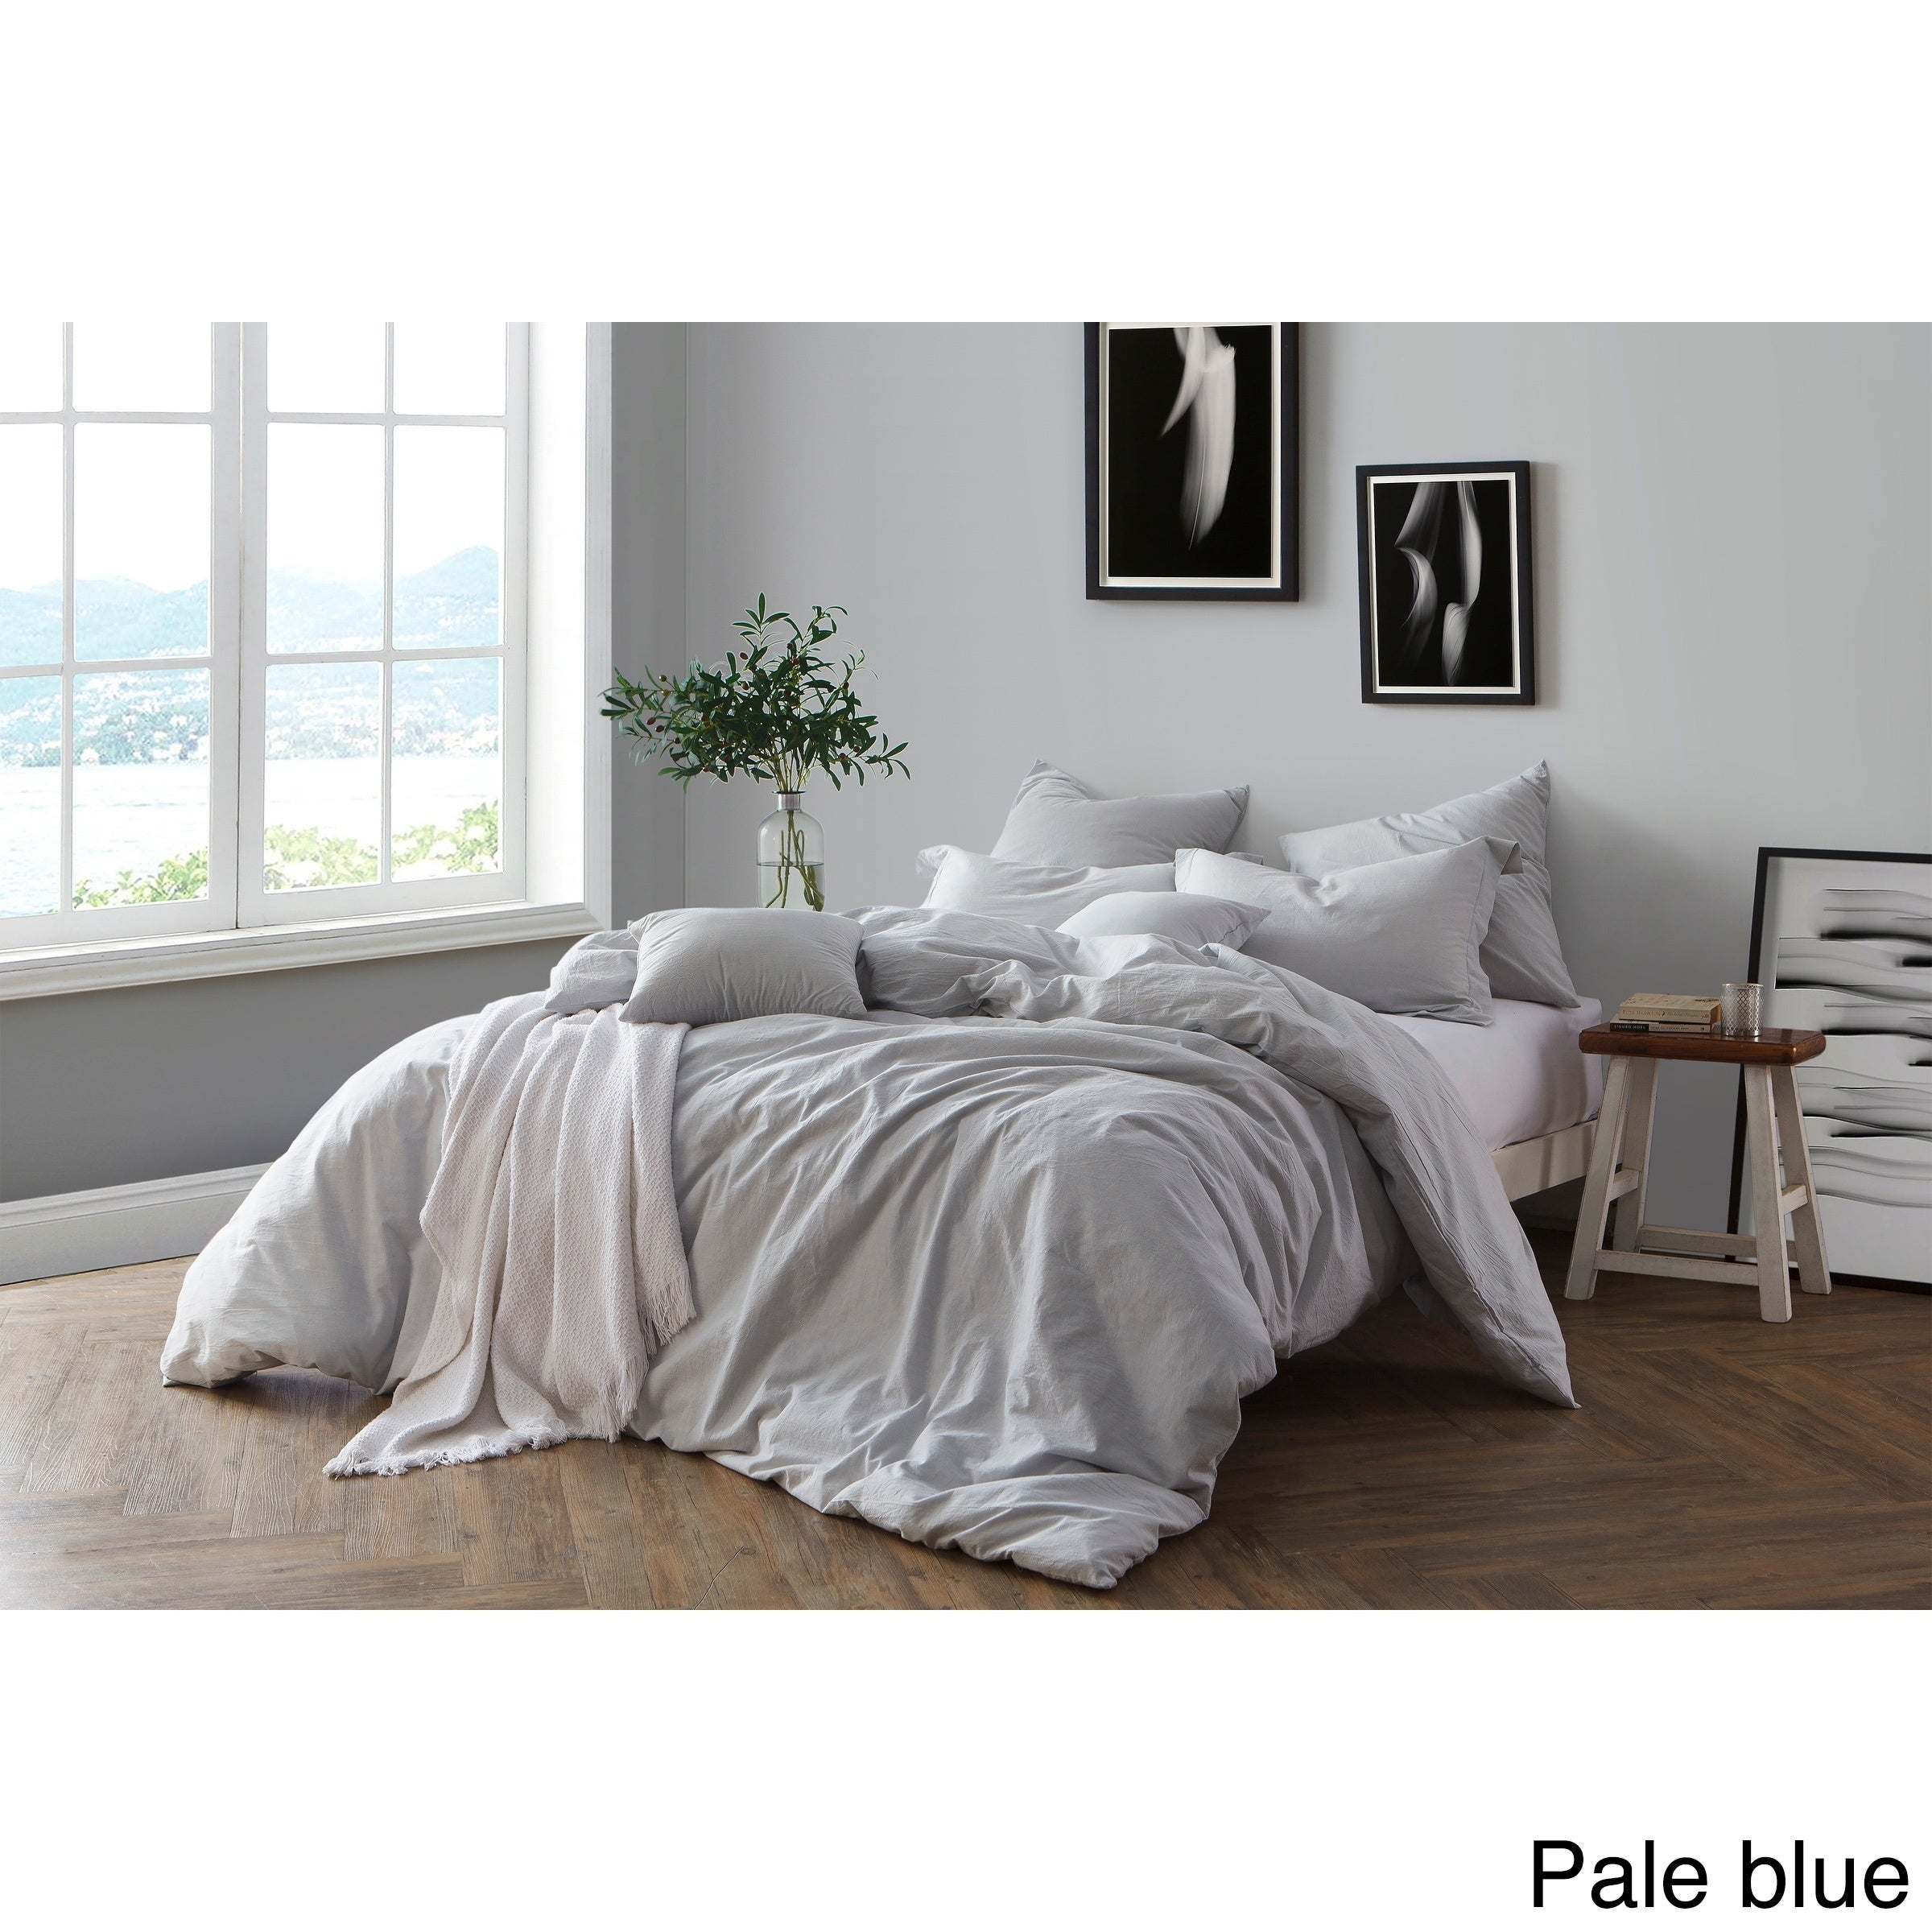 sheets grey comforter burgundy silver linen queen boho covers knitted king elm duvets beige duvet white chambray size sets thinking pinstripe flannel full black doona green magical stripe gray mod bedding quilt moss light set striped cover dark and west uk of